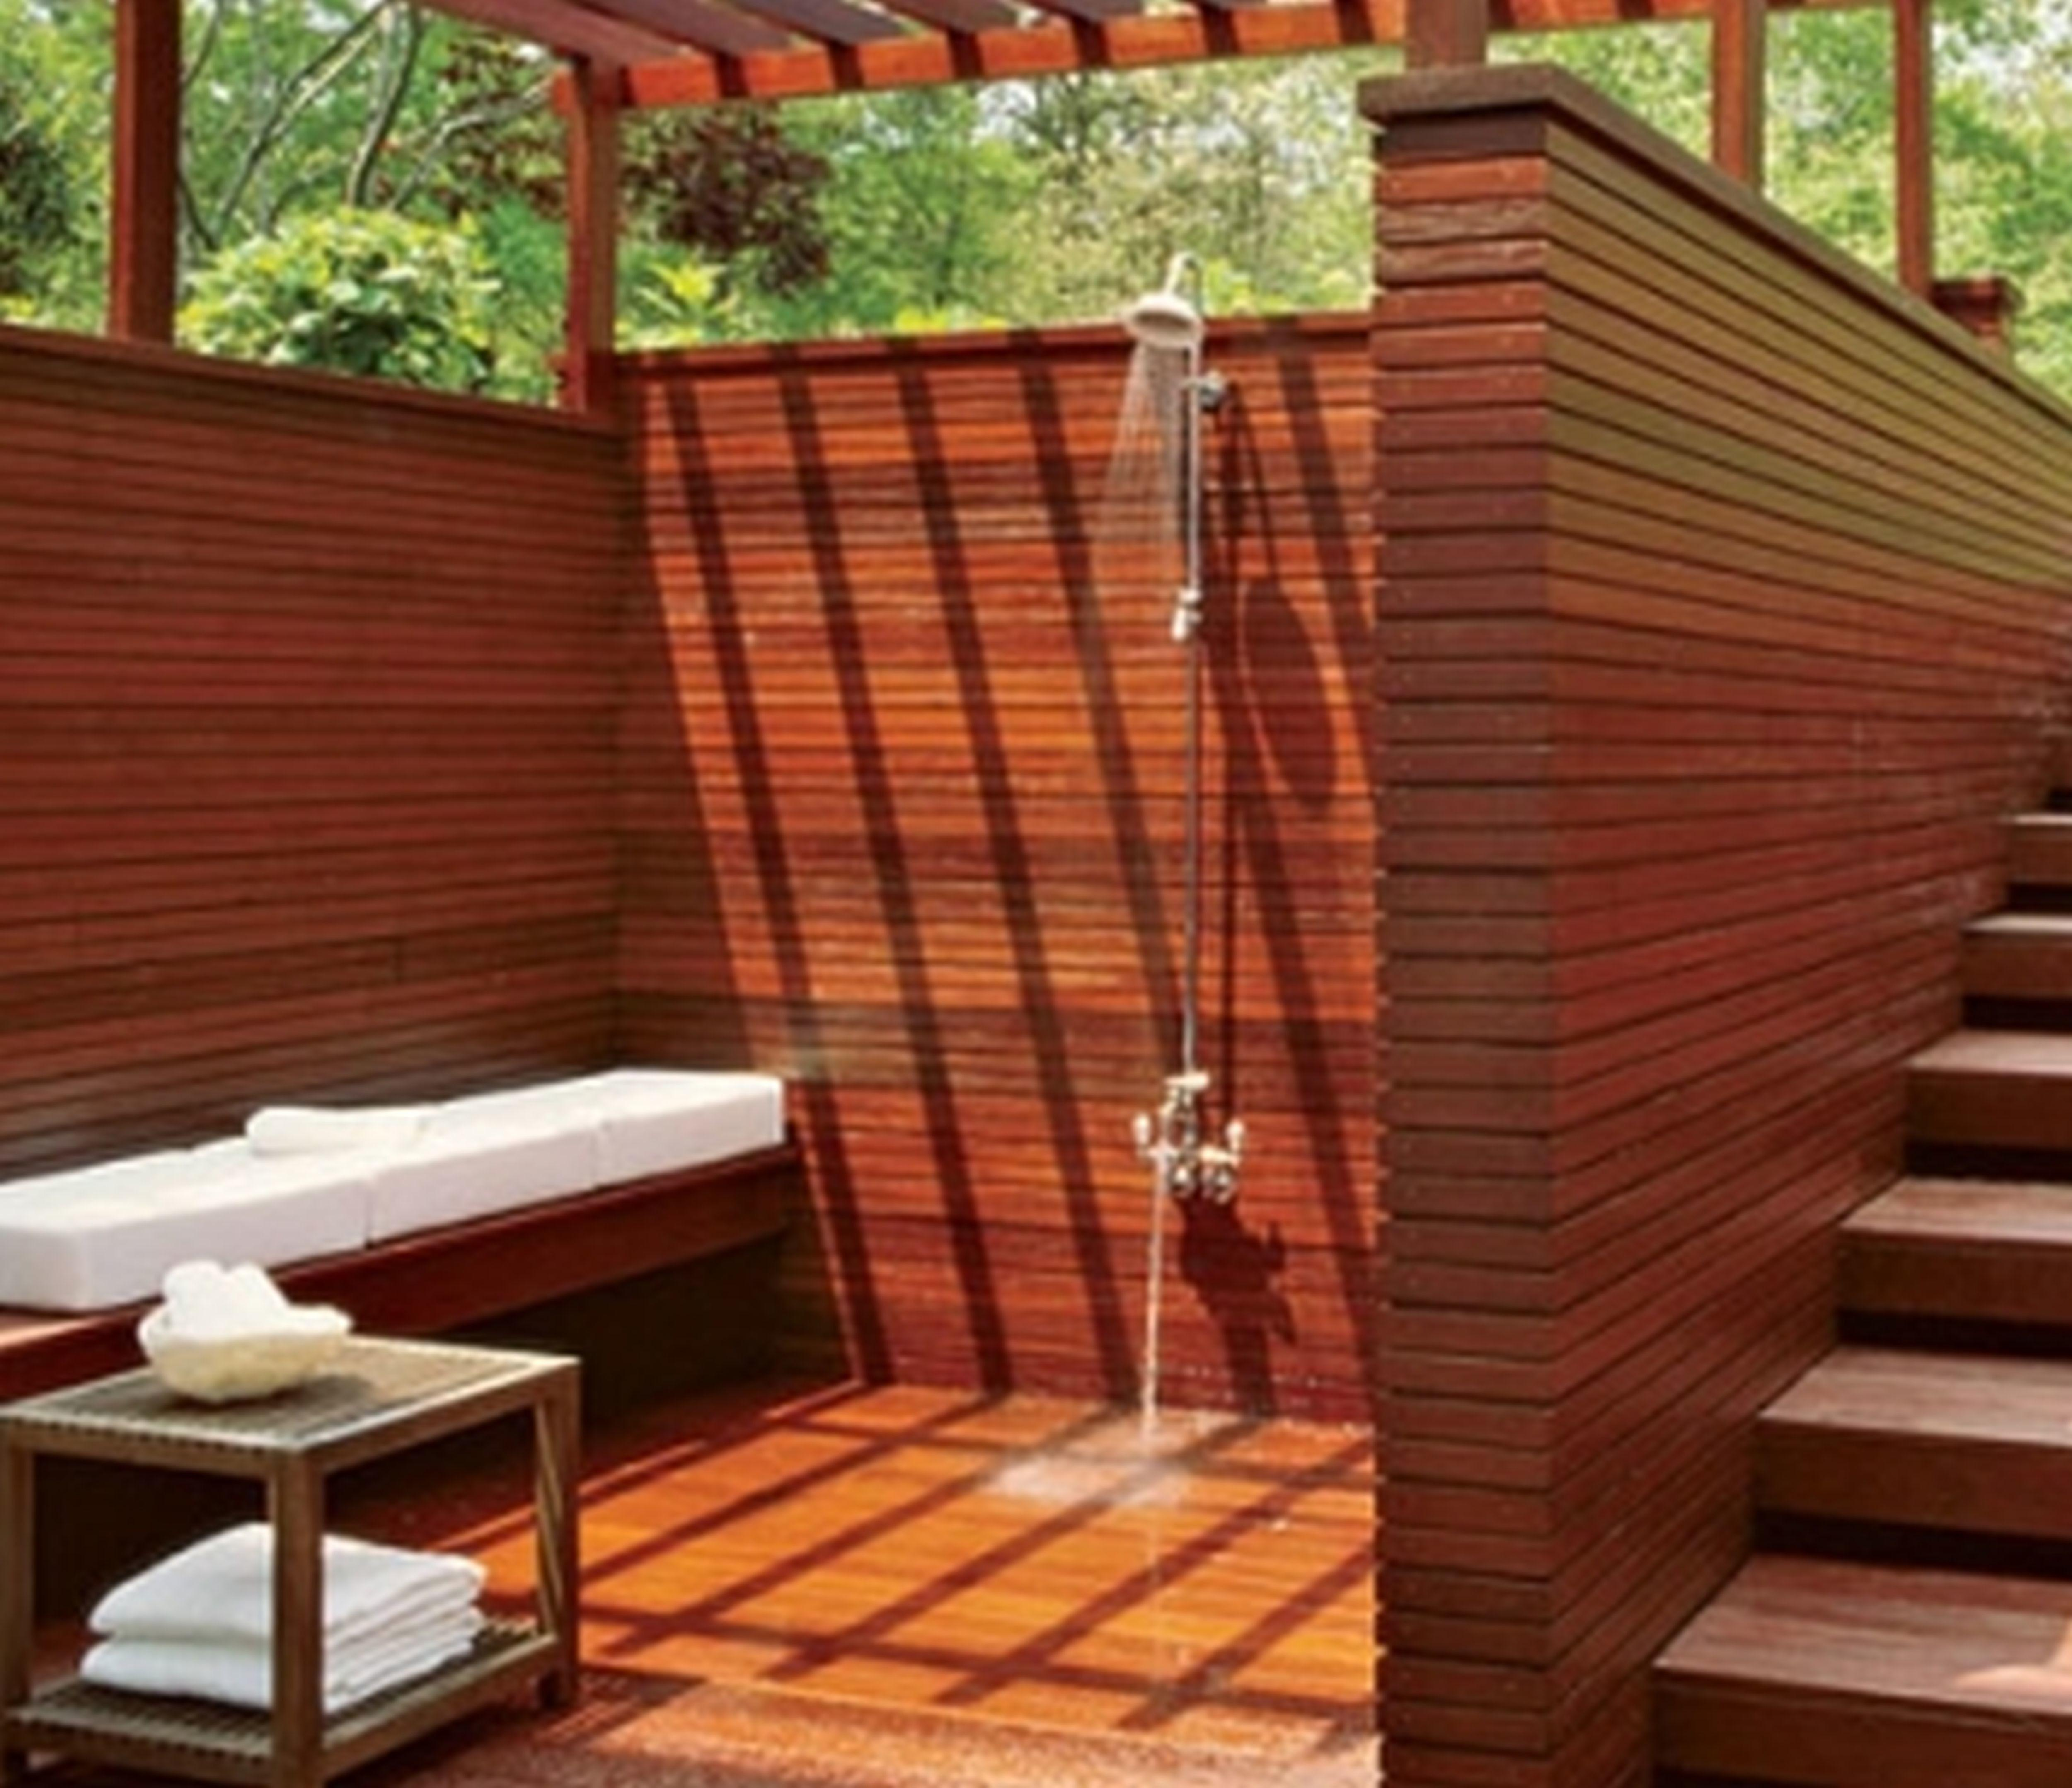 100 Outdoor Bathrooms Ideas Bathroom Unique